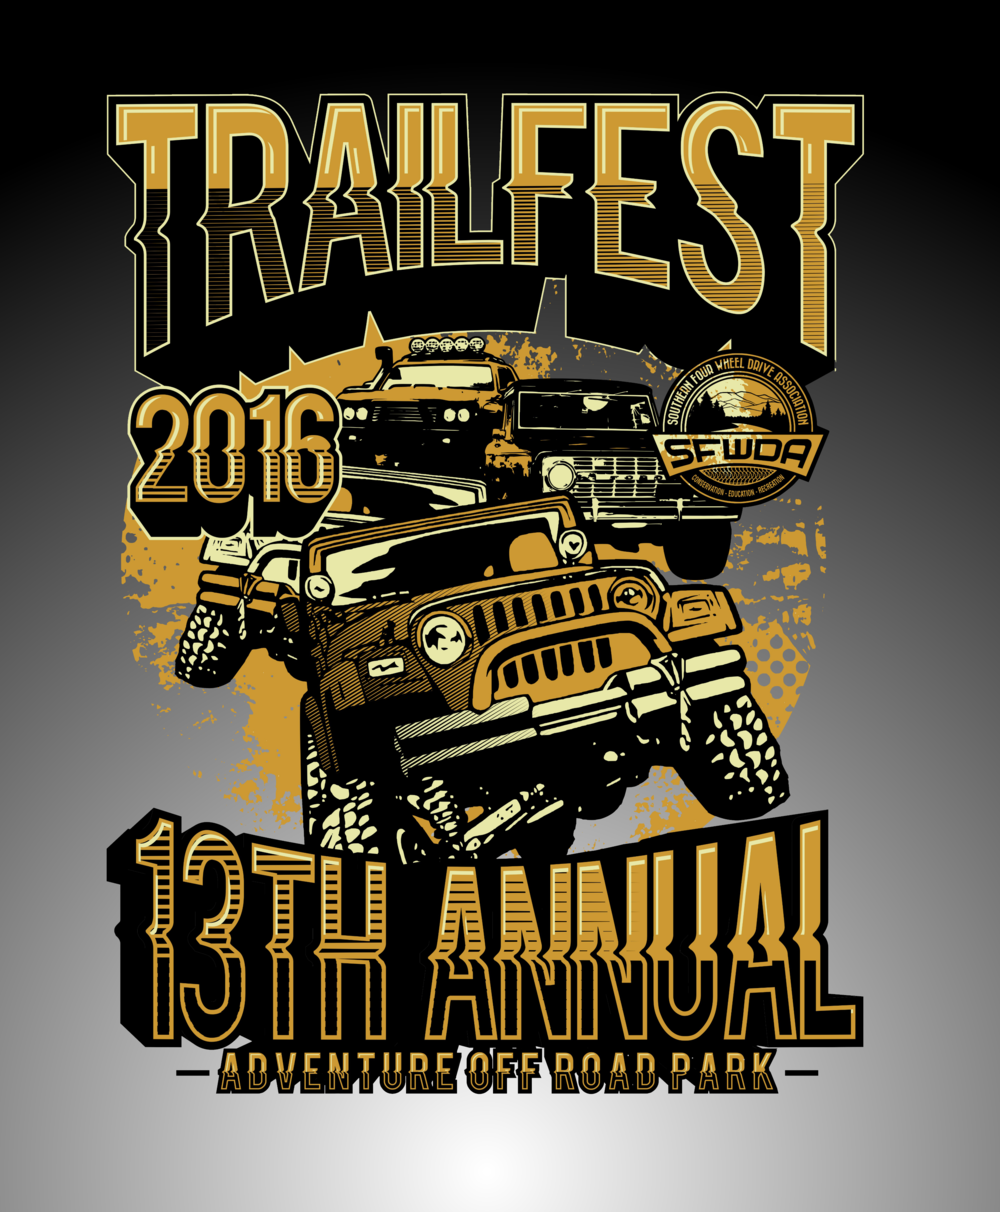 Trailfest_2016_logo